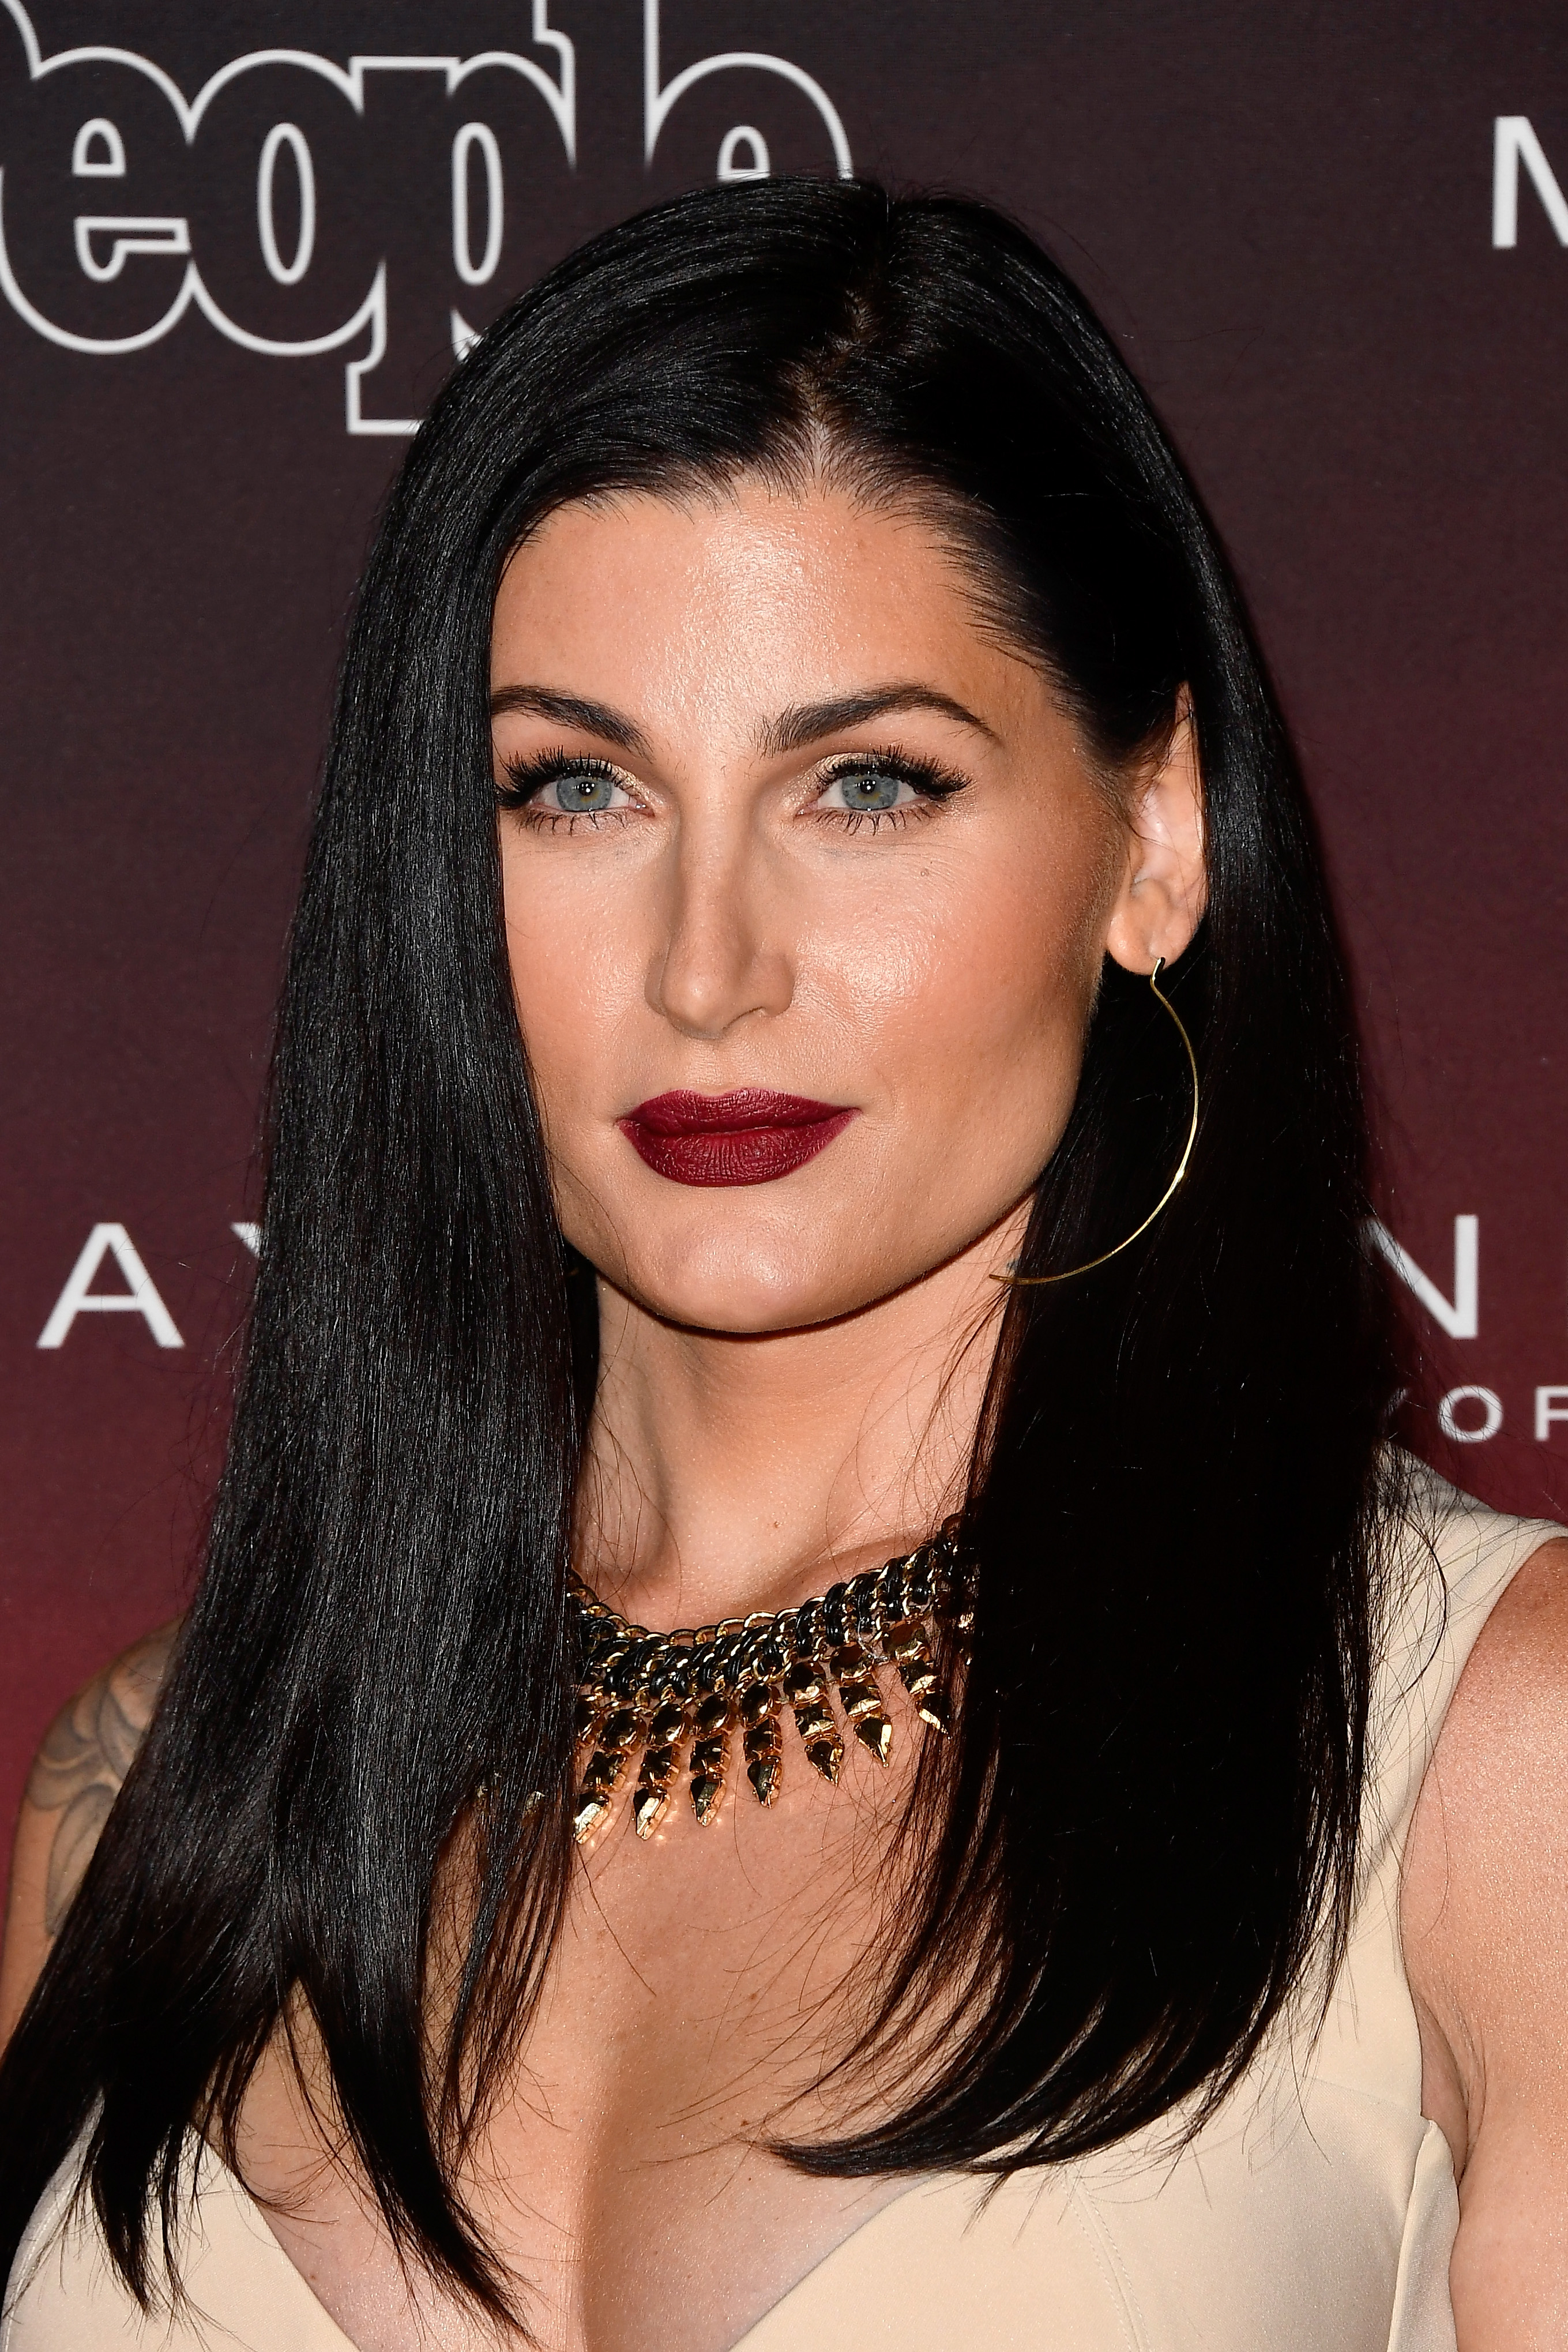 Trace Lysette, Trace Lysette Sexual Misconduct, trace lysette jeffrey tambour accuser, Trace Lysette man, Trace Lysette age, Trace Lysette surgery